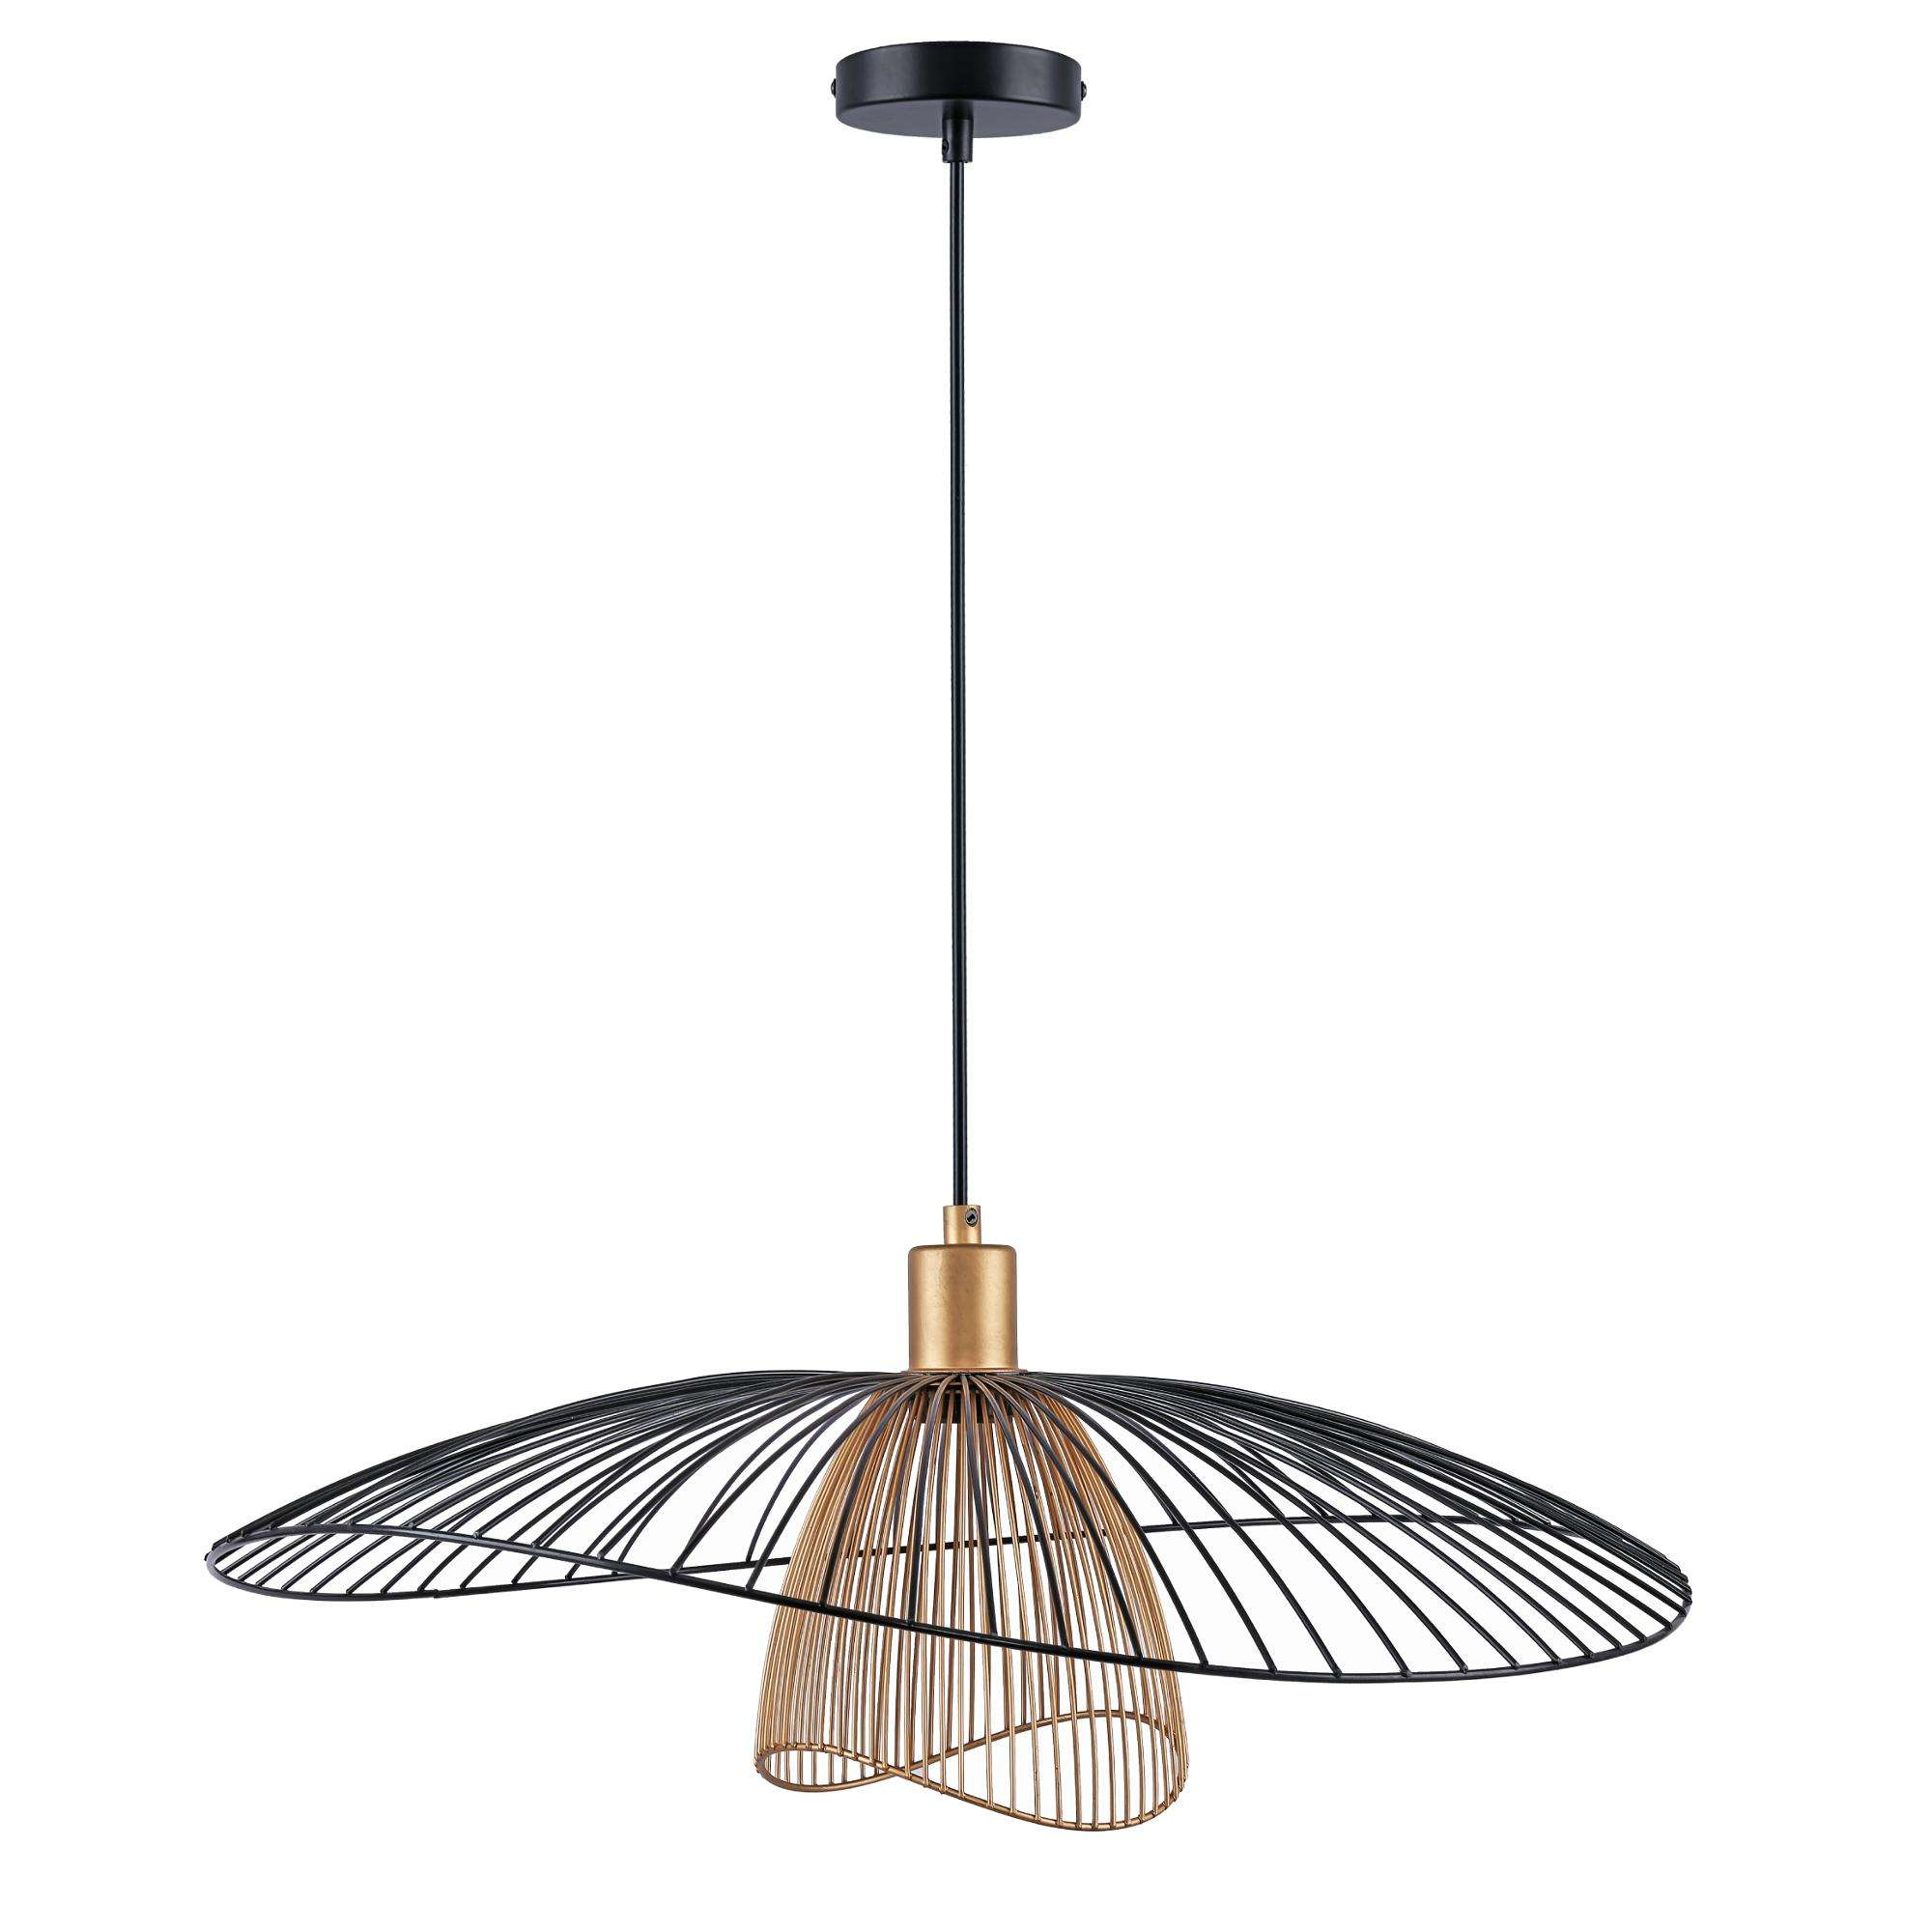 Modern Industrial Hanging Light Pendant Lamp Single Light Wire Cage Ceiling Pendant Light Fixture